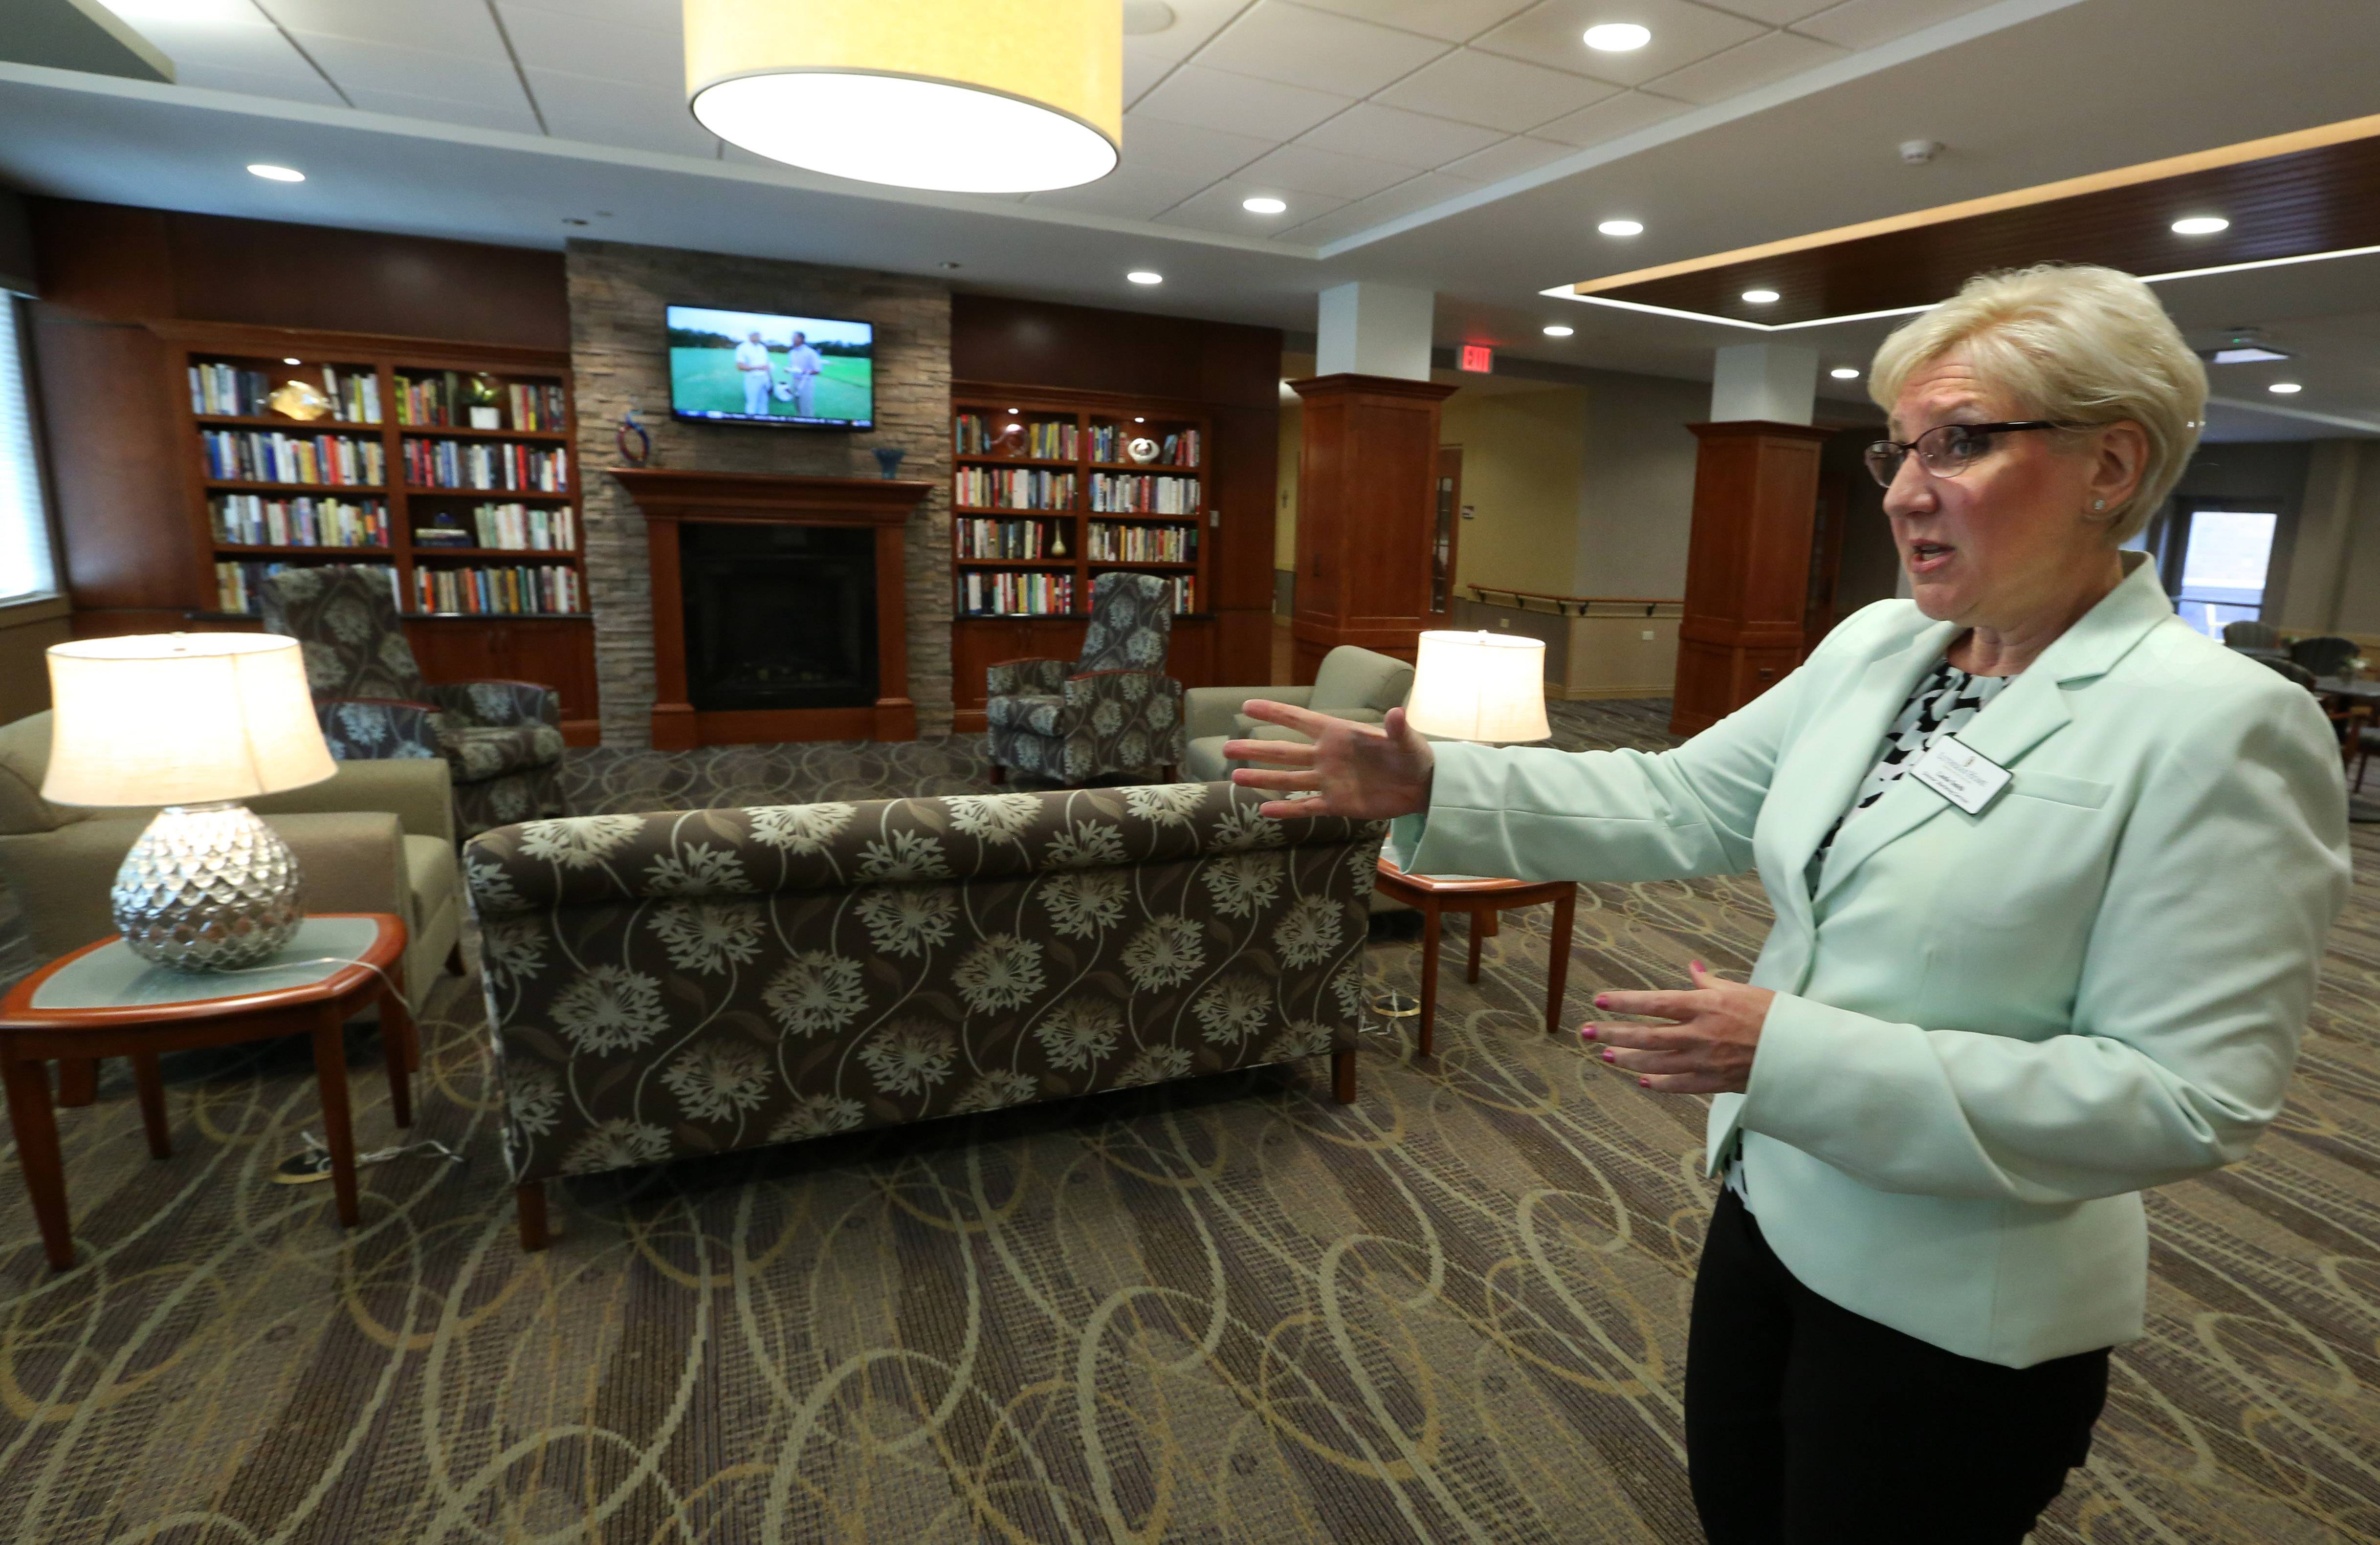 Linda Smith, director of marketing services for Lutheran Home, shows the lounge off the bistro dining area at Lutheran Home's new MyRehab Center in Arlington Heights. The new facility opens Wednesday.